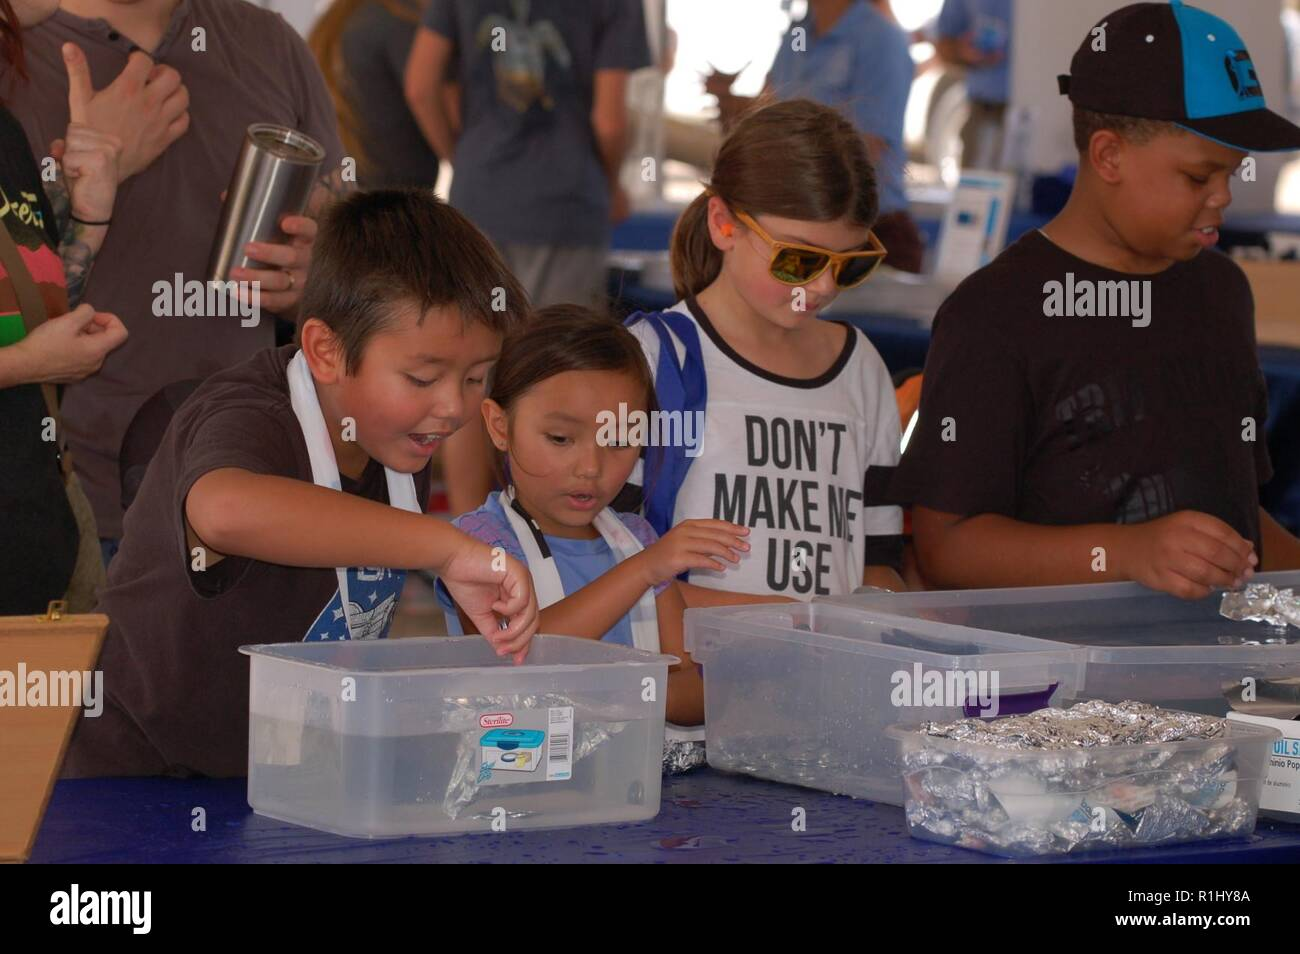 Staff members from the Naval History & Heritage Command were on-hand at the NAS Oceana Air Show offering hands on STEM exhibits. Visitors both young and young at heart had the opportunity to learn about density, sound waves, sonar, and take in some naval history at the exhibit. Stock Photo